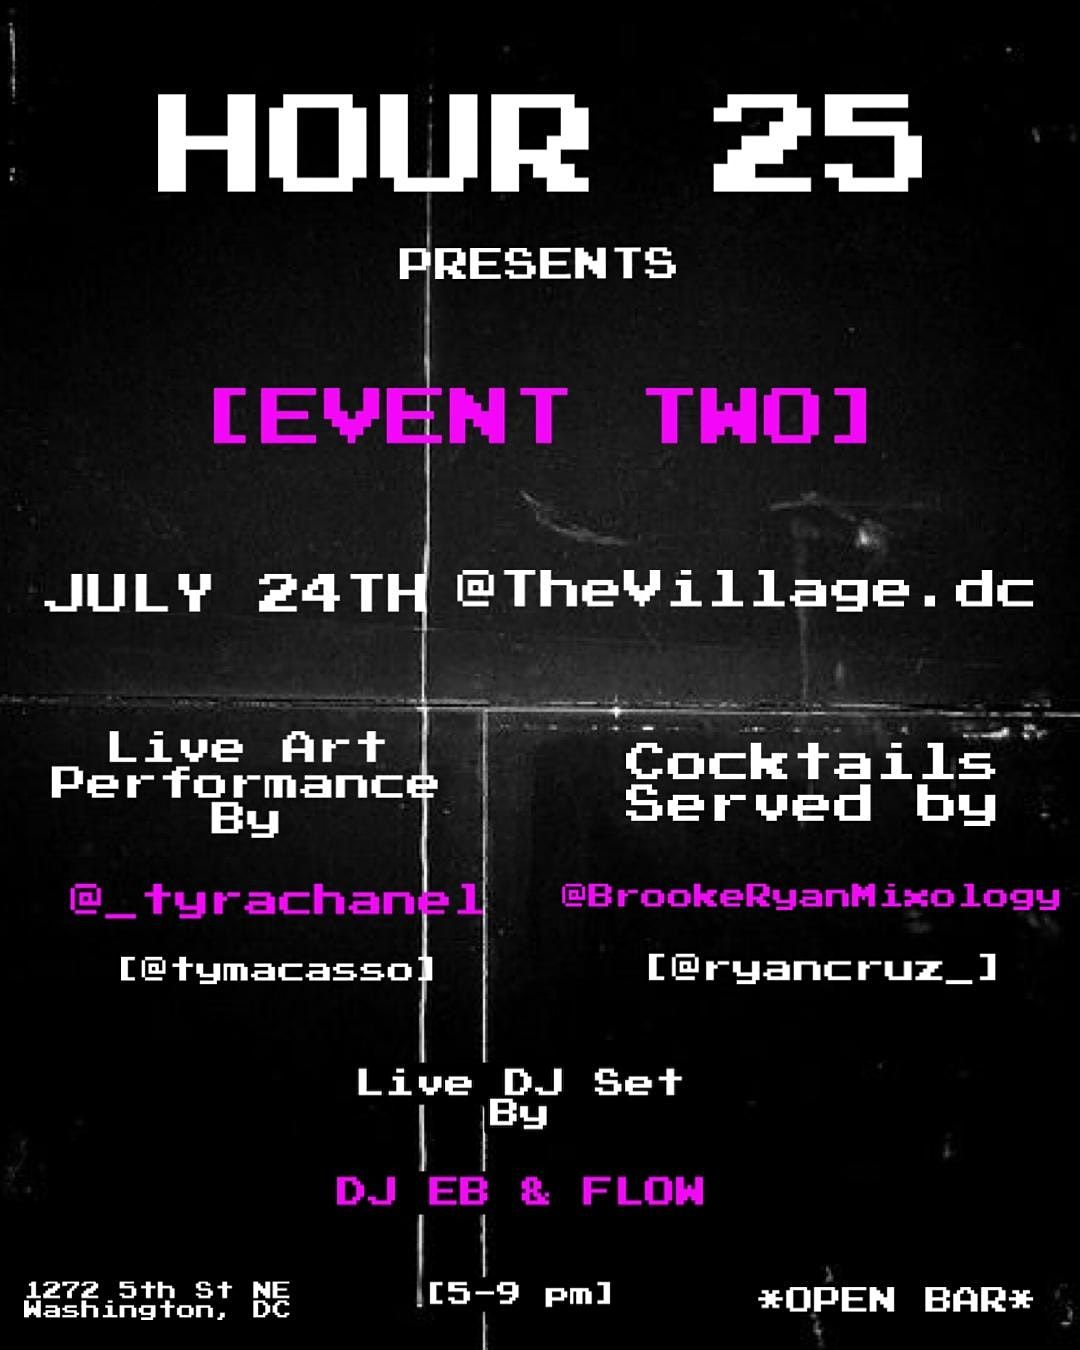 Hour 25 presents [EVENT TWO]